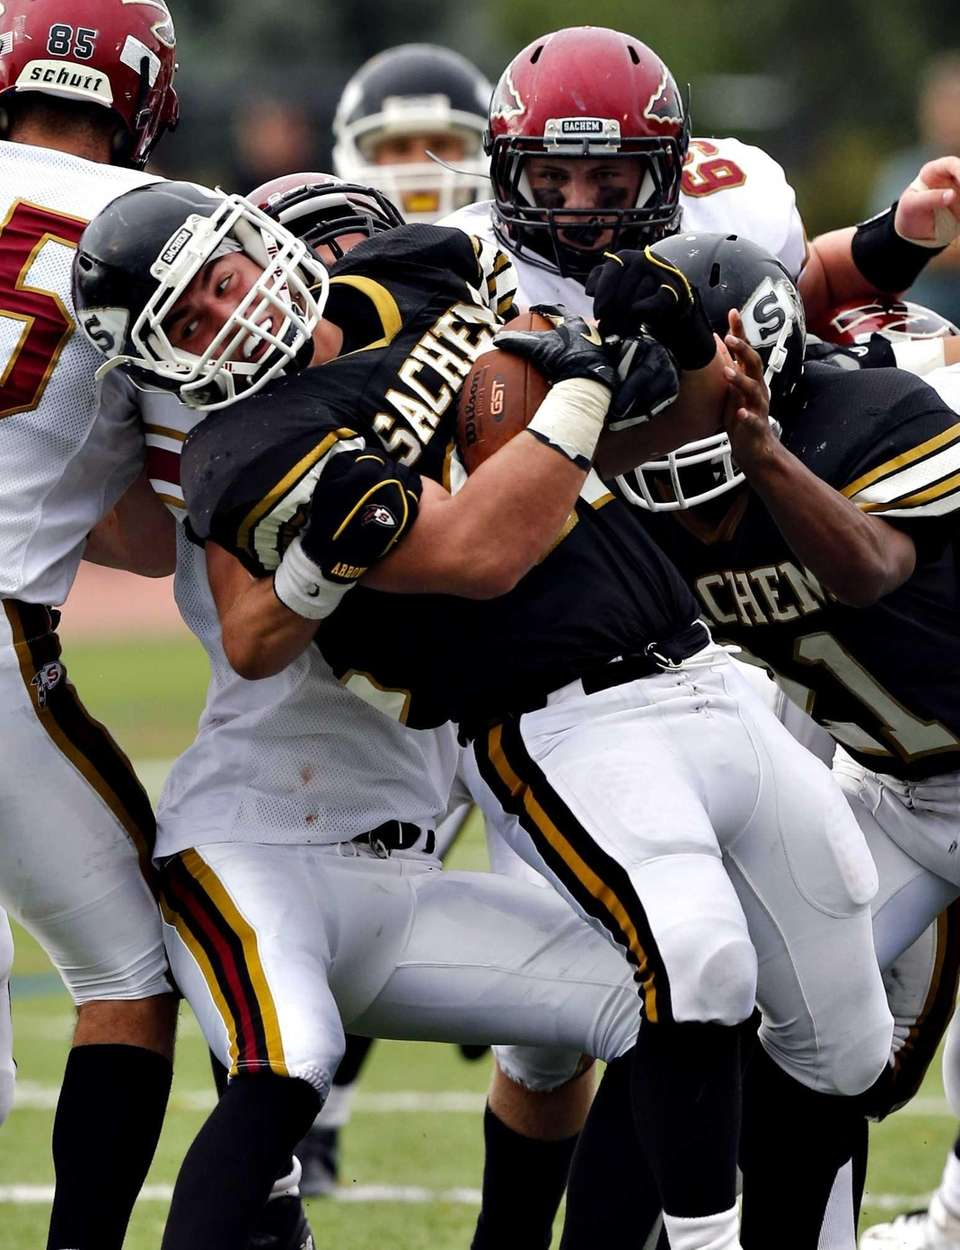 Sachem North's Tyler Andreassi twists away from tacklers